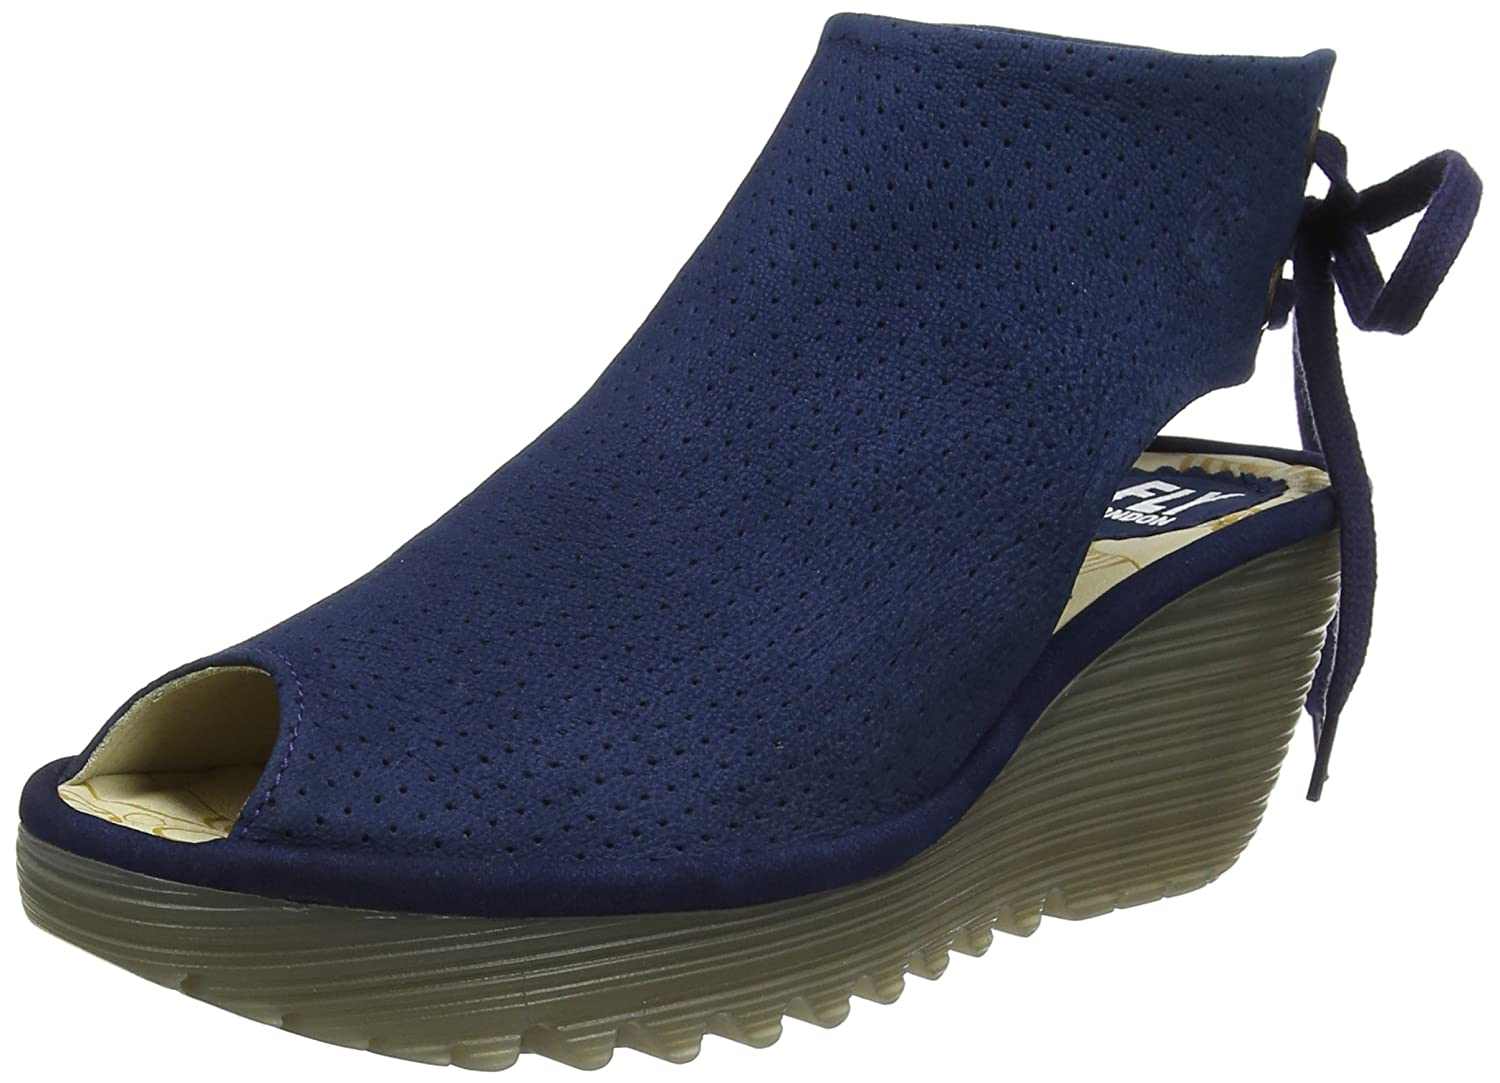 FLY London Womens Ypul Nubuck Wedge Heel Open Toe Platform Summer Sandal B077C49M9J 39 EU (8-8.5 B(M) US Women)|Blue